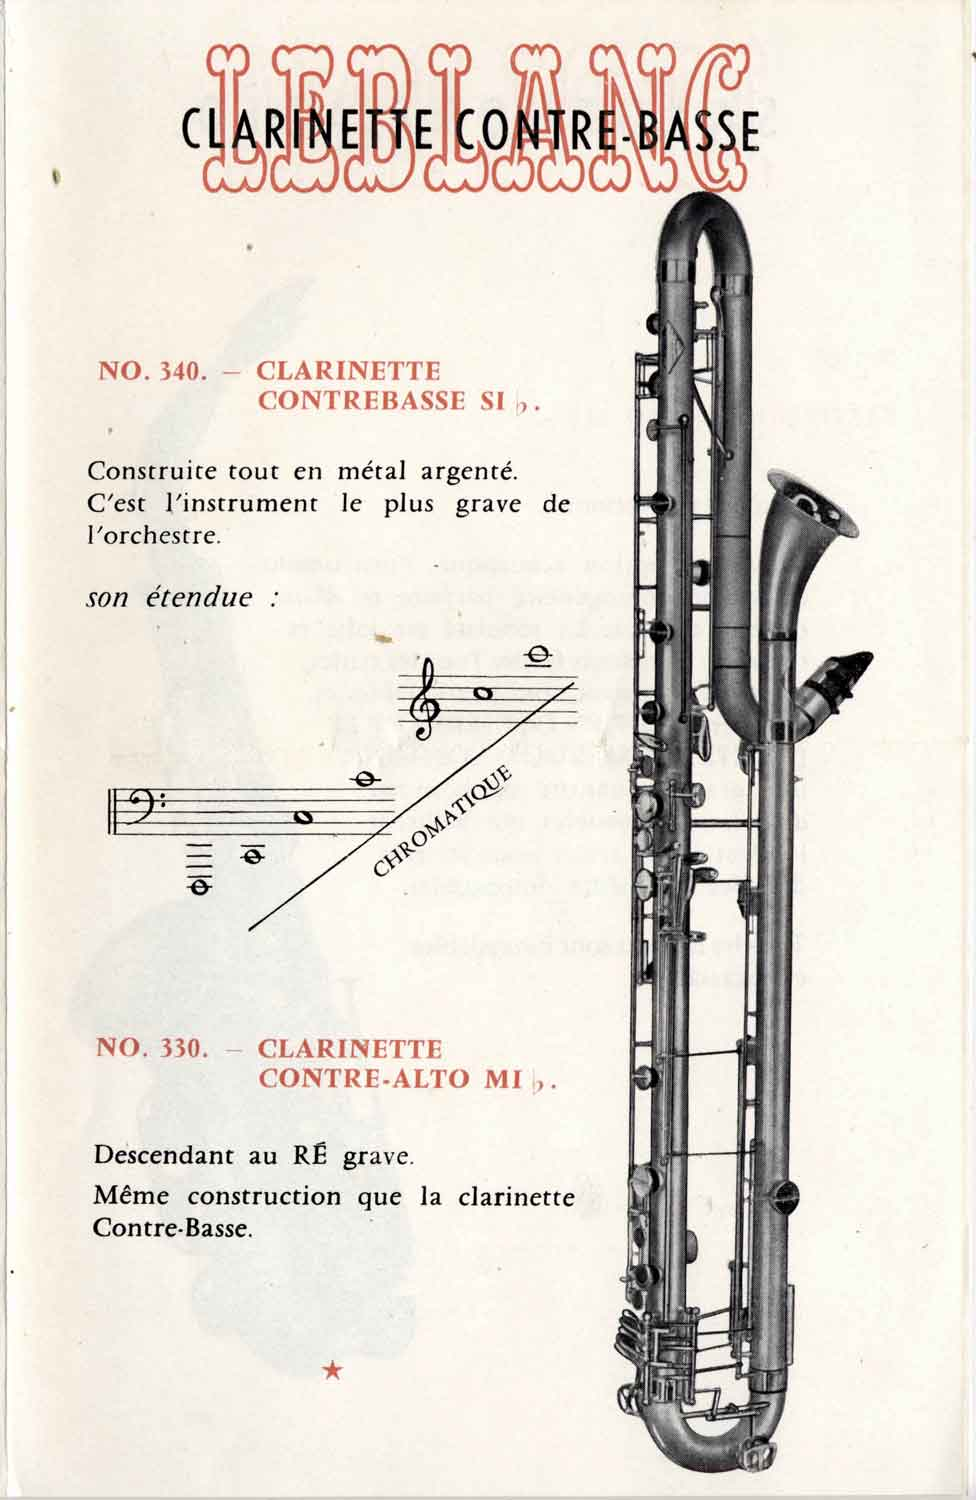 Valentin cases : Leblanc poster showing the contrabass clarinet.